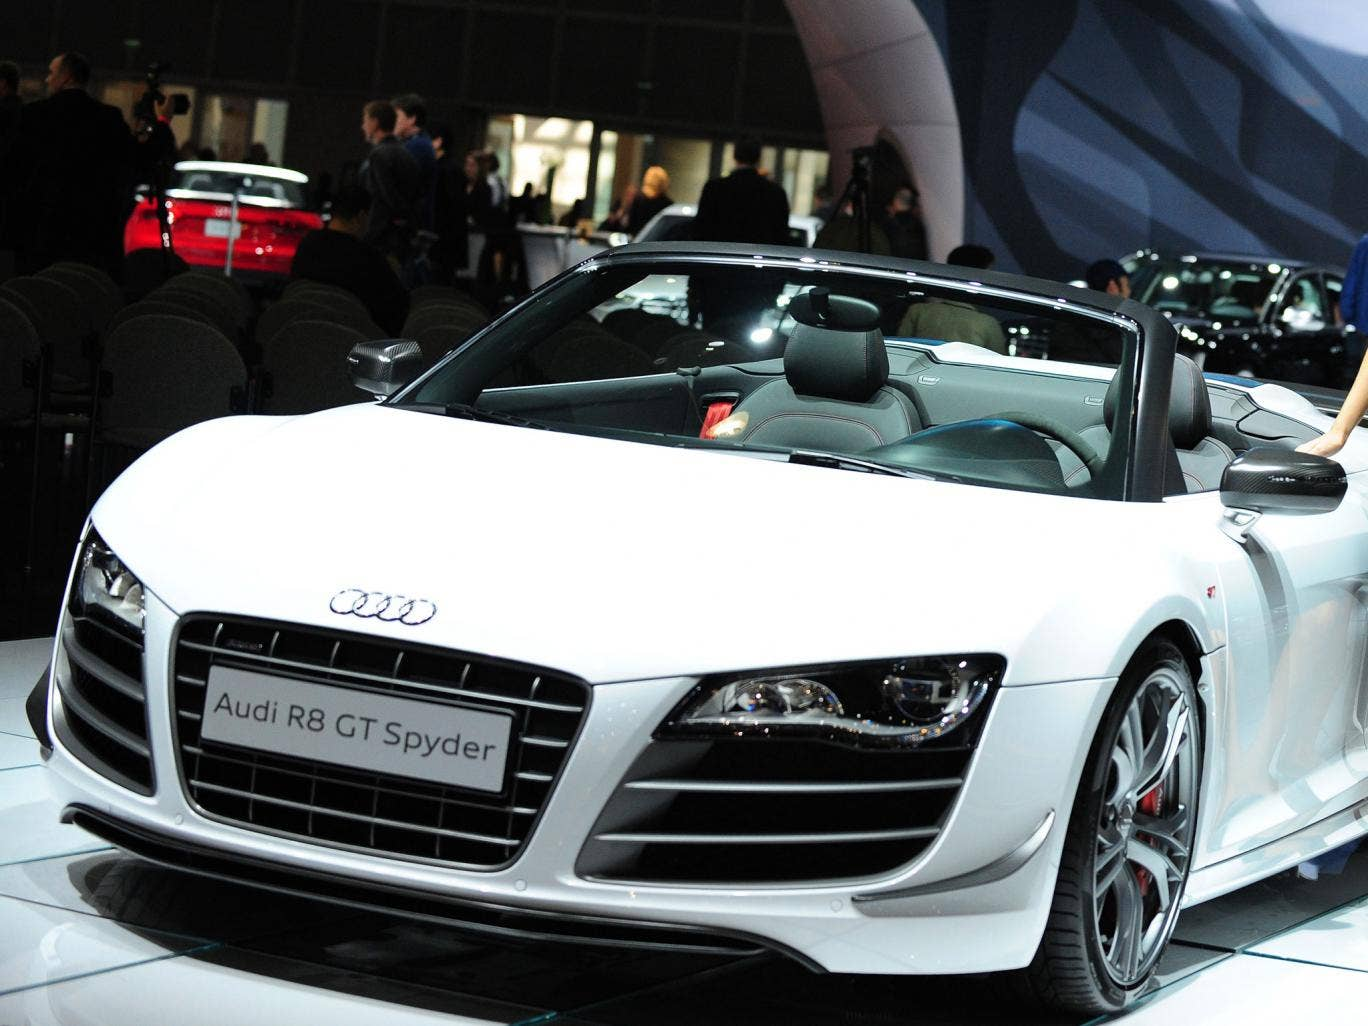 An Audi R8 Spyder, the make of car used by Mr Mahmoon to top 164mph